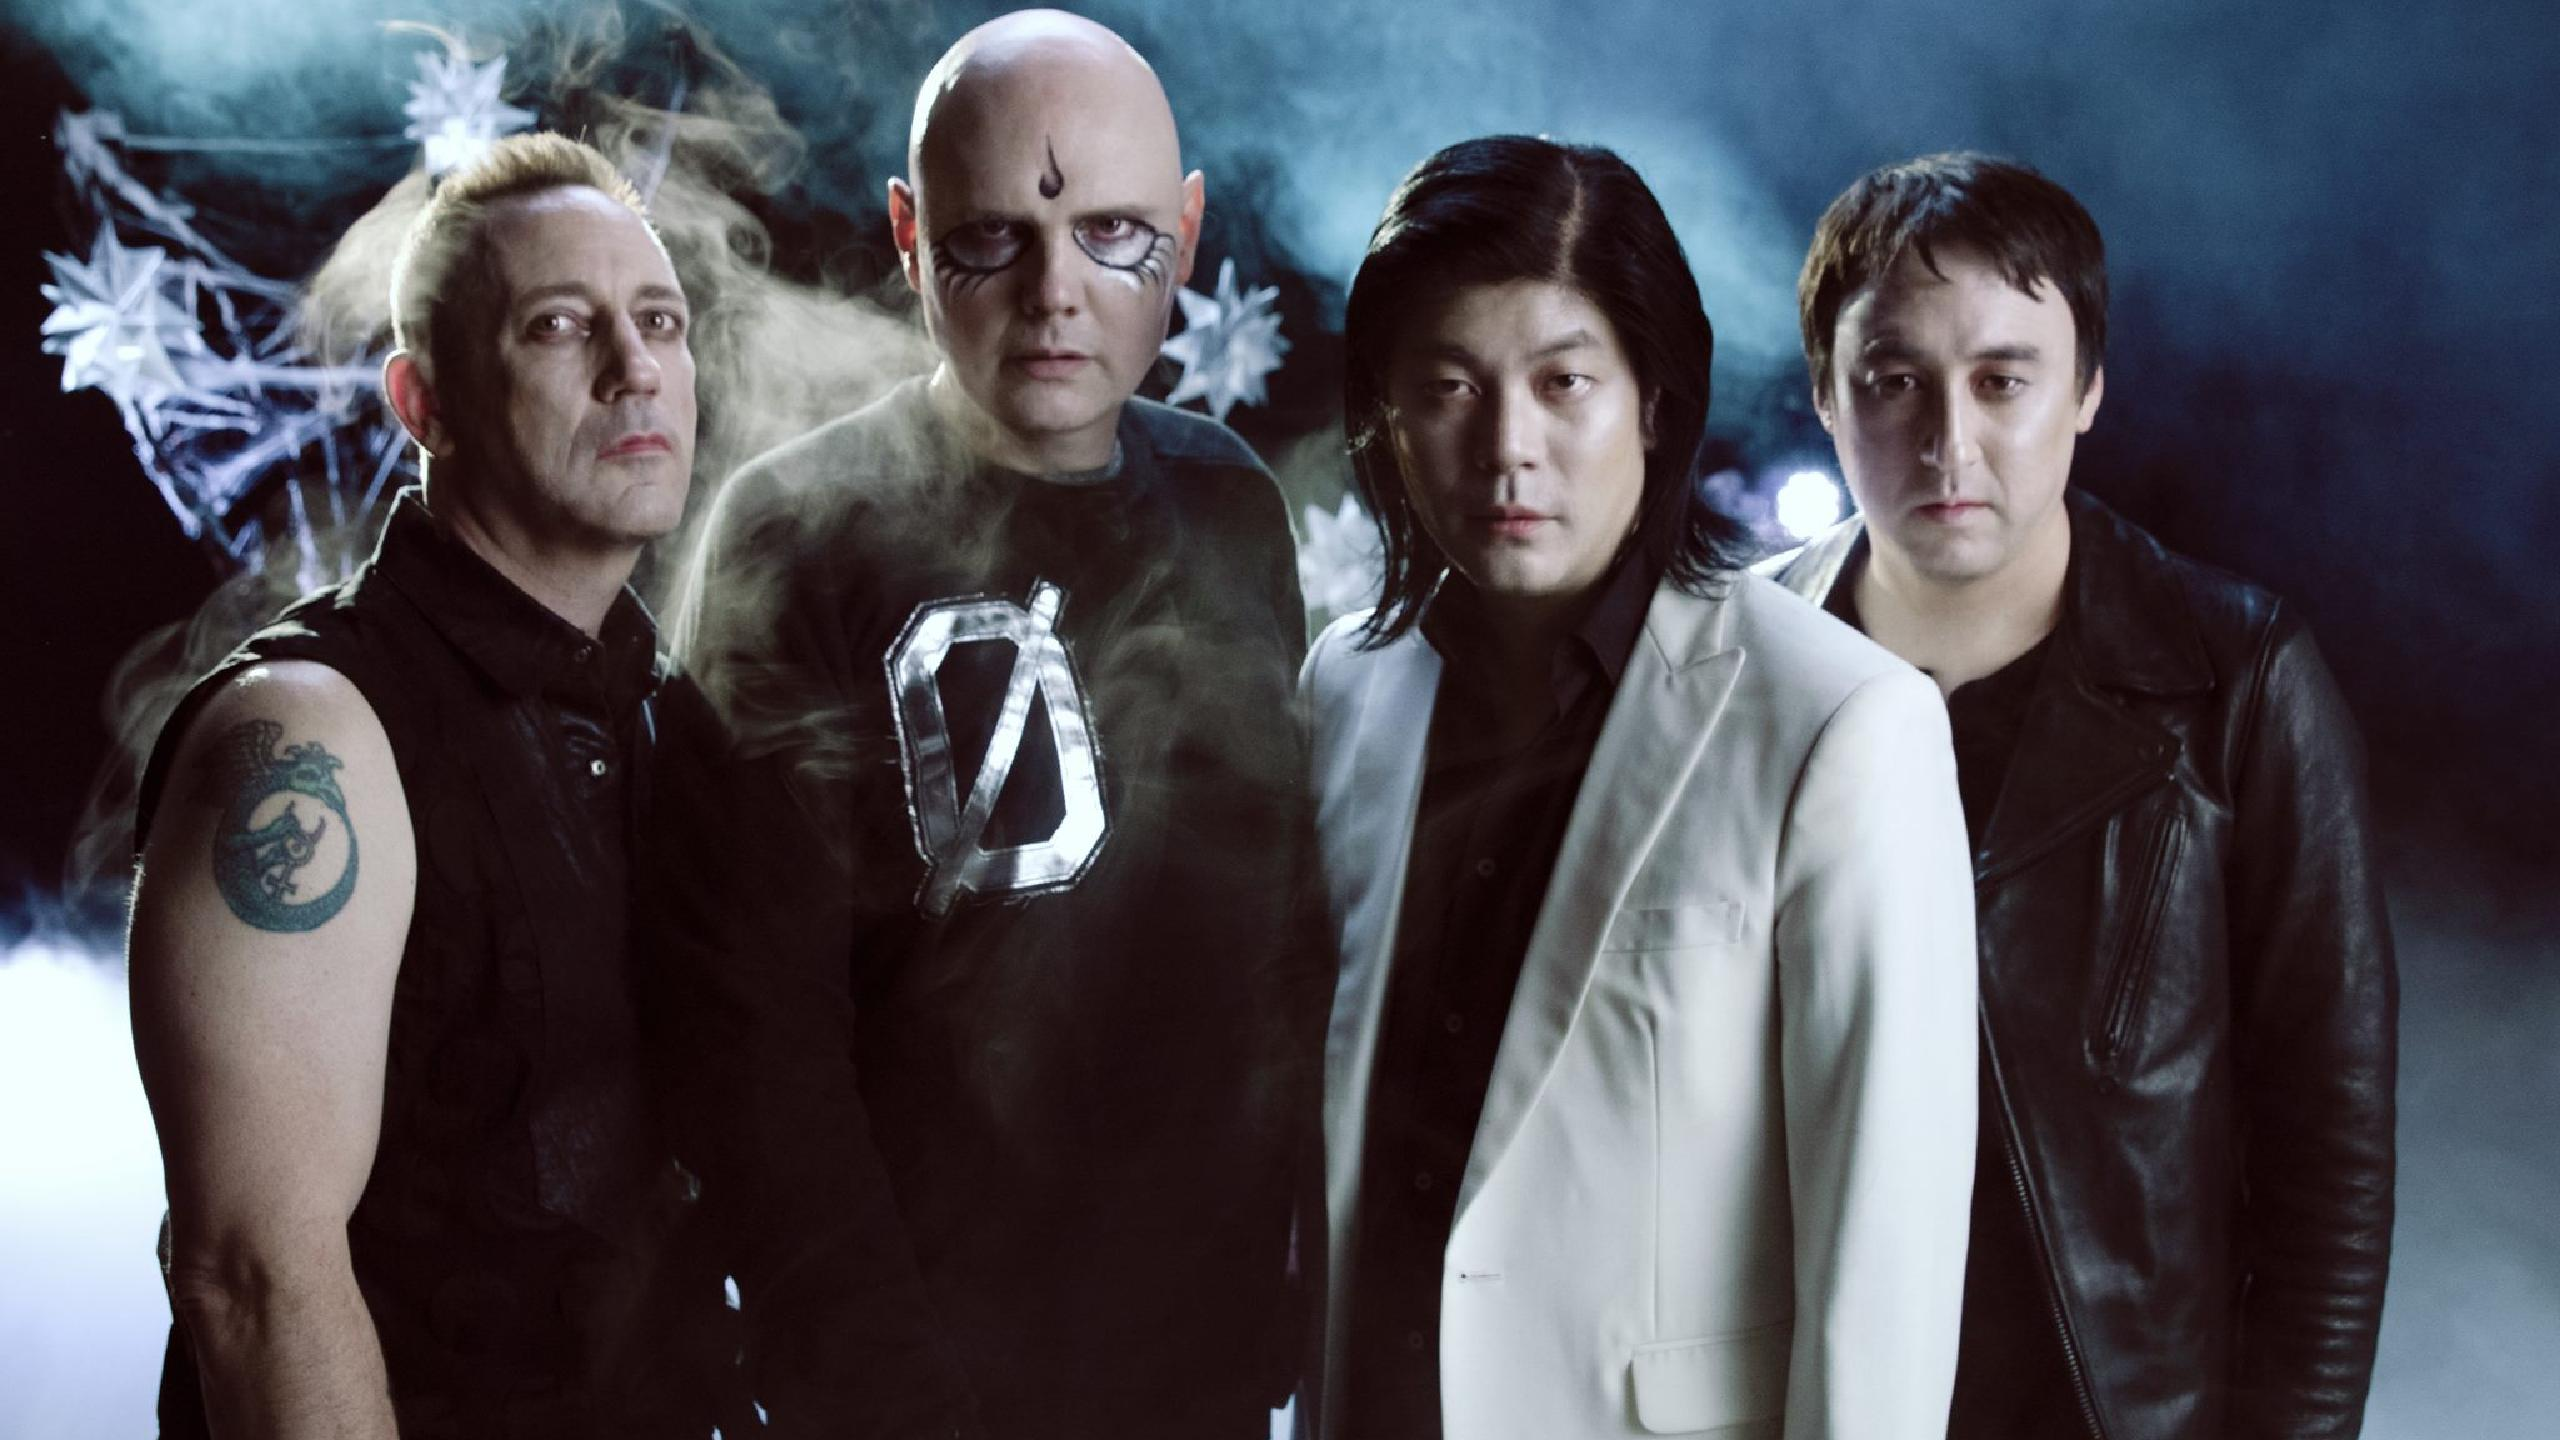 Smashing Pumpkins Tour Dates 2020.The Smashing Pumpkins Tour Dates 2019 2020 The Smashing Pumpkins Tickets And Concerts Wegow